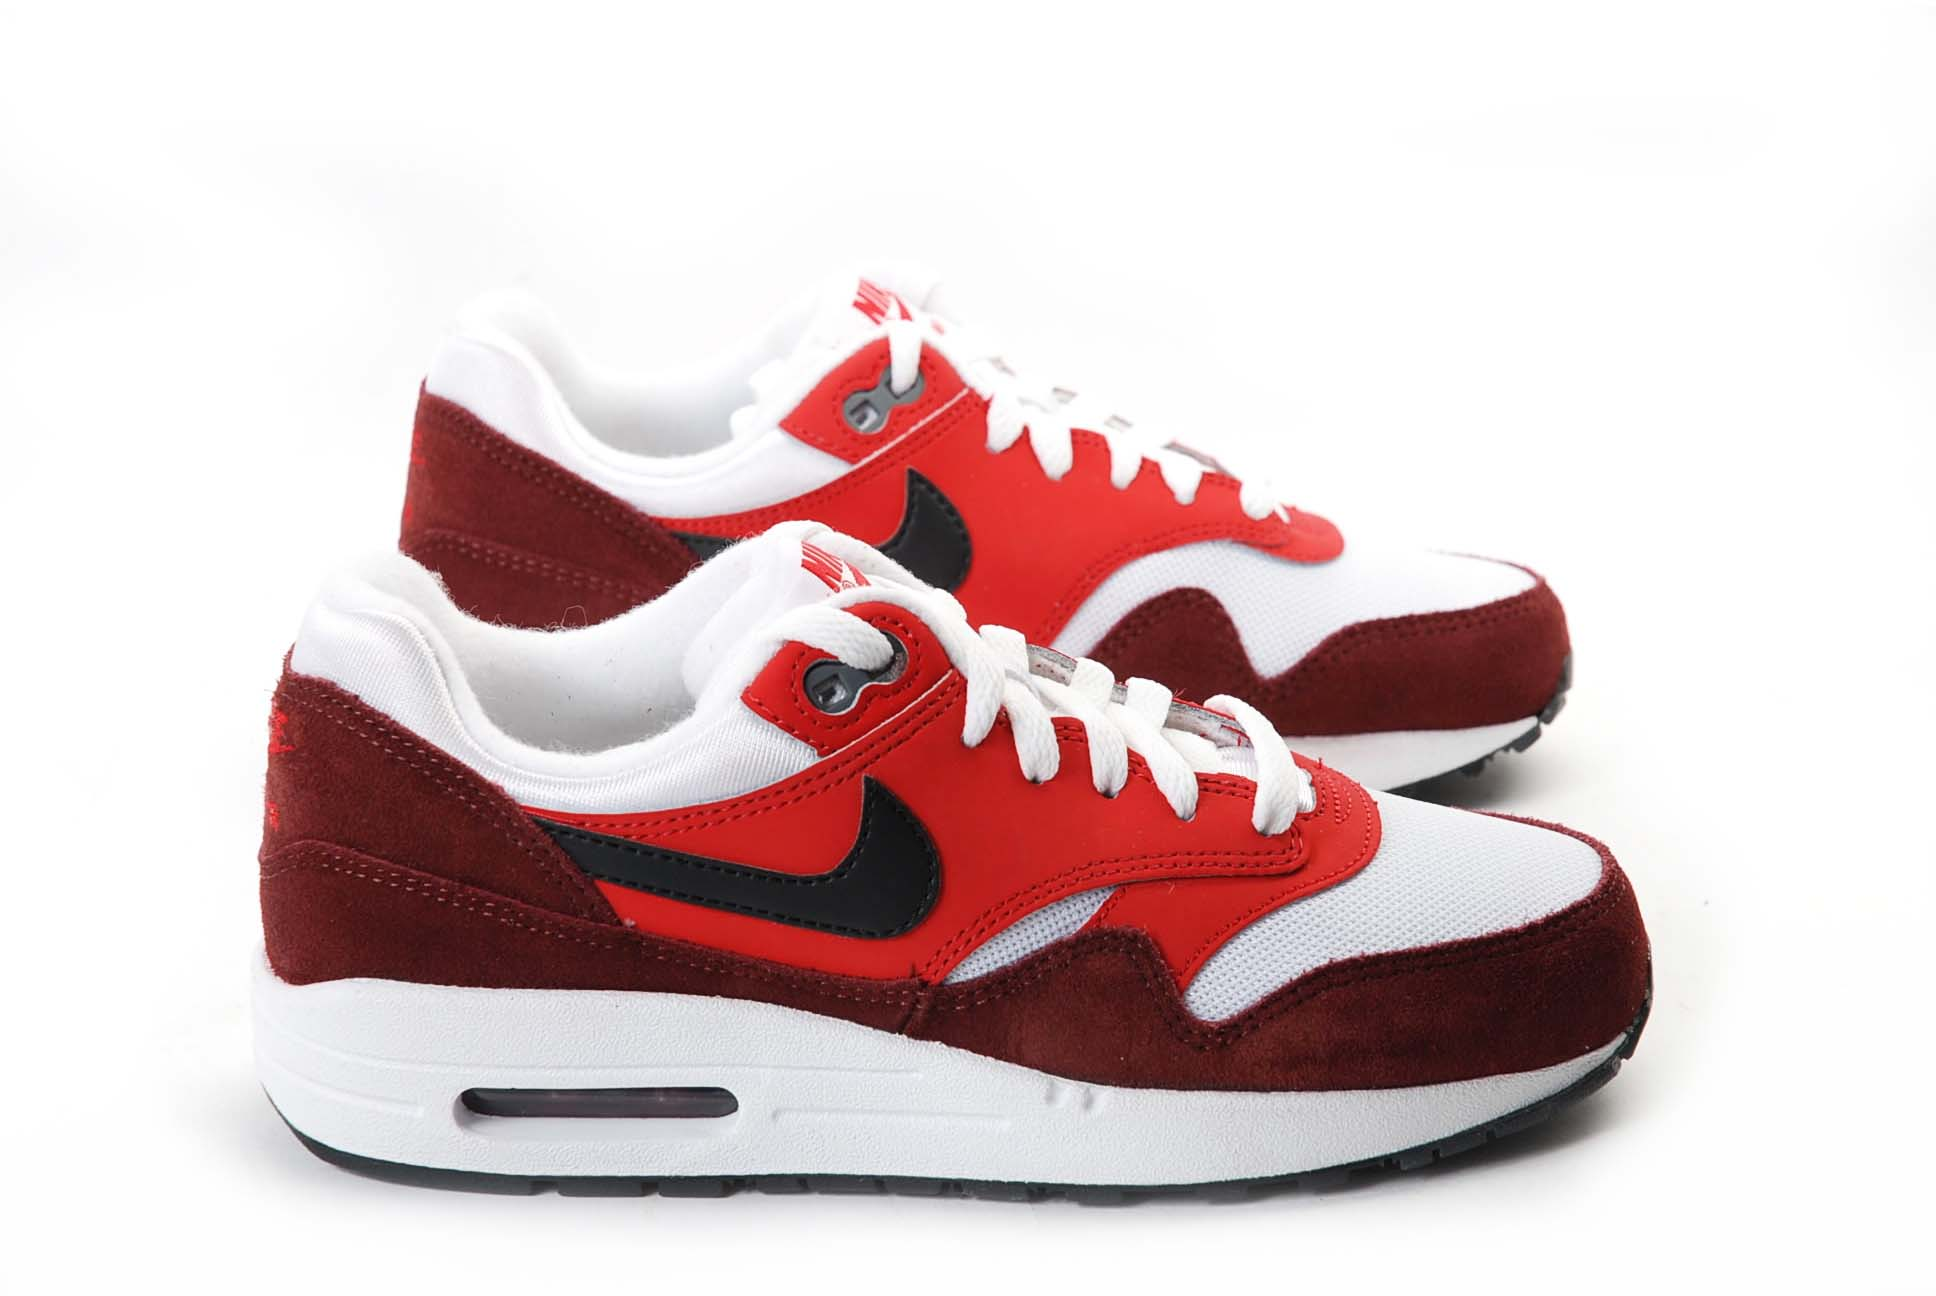 nike air max 1 chaussures rouge